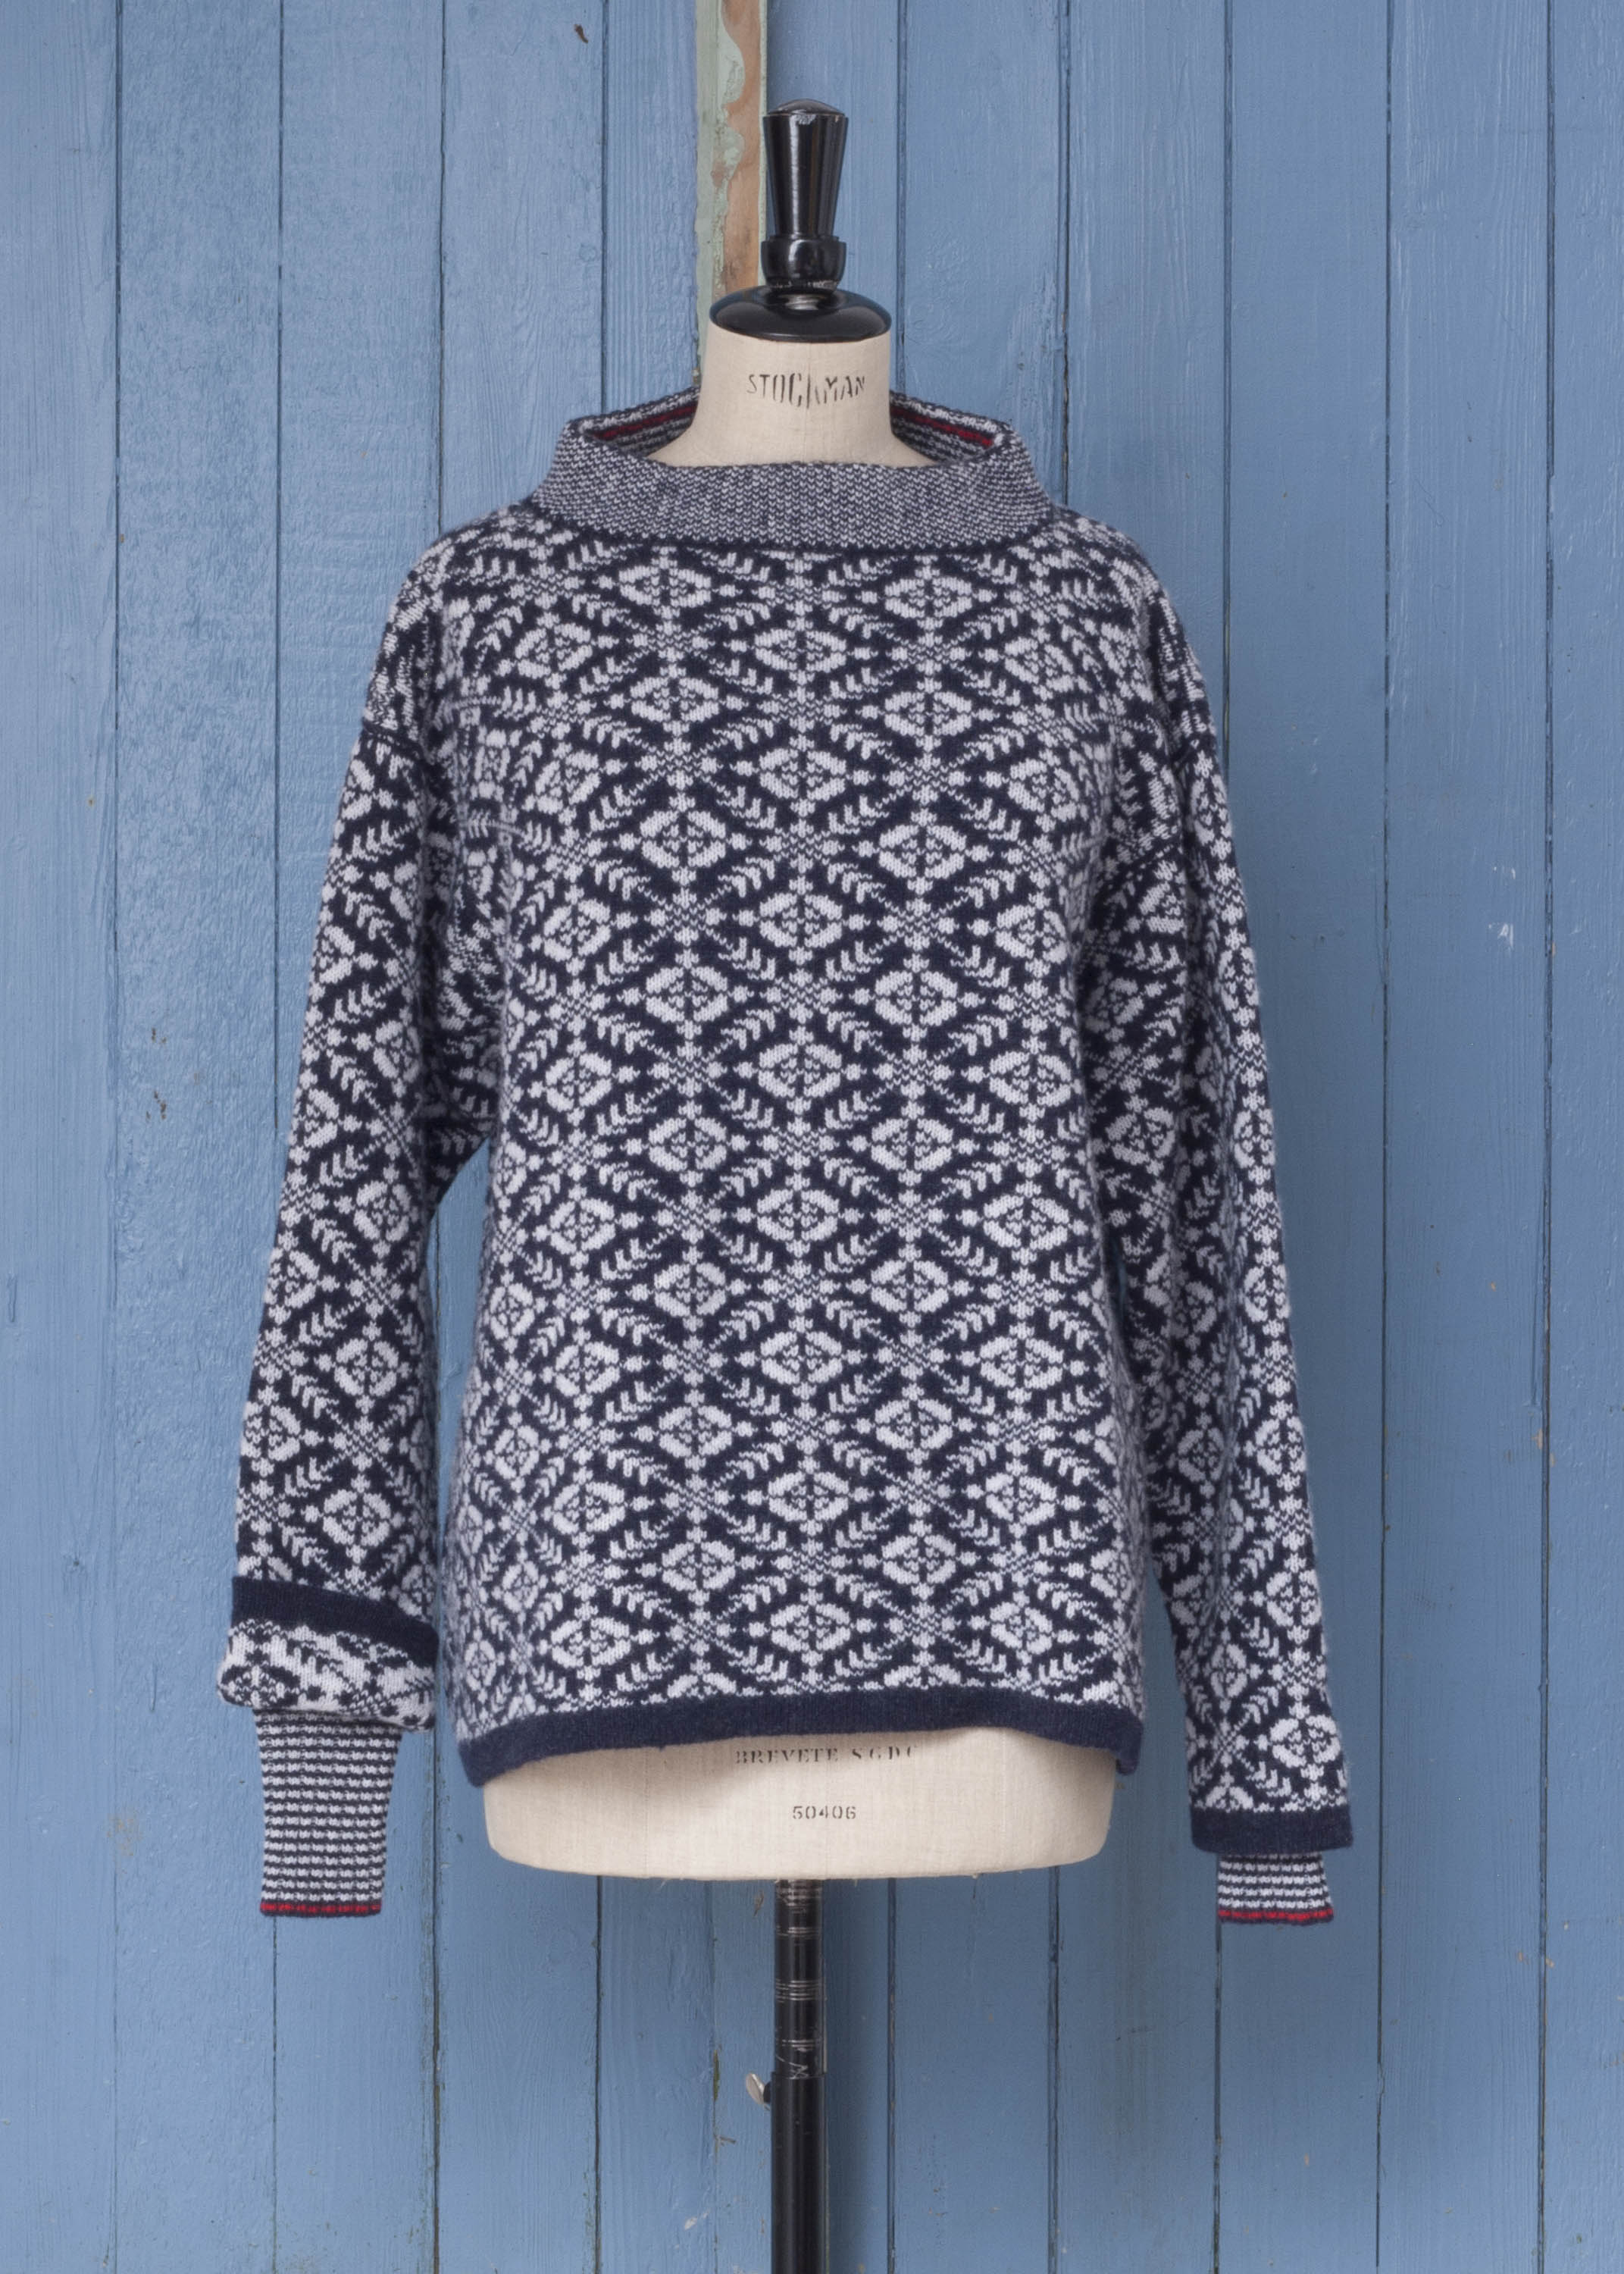 Shetland Smookie jumper with all-over Fair Isle pattern in navy and feather. Stand up neck and storm cuffs. Shown on vintage mannequin against blue panelled door.